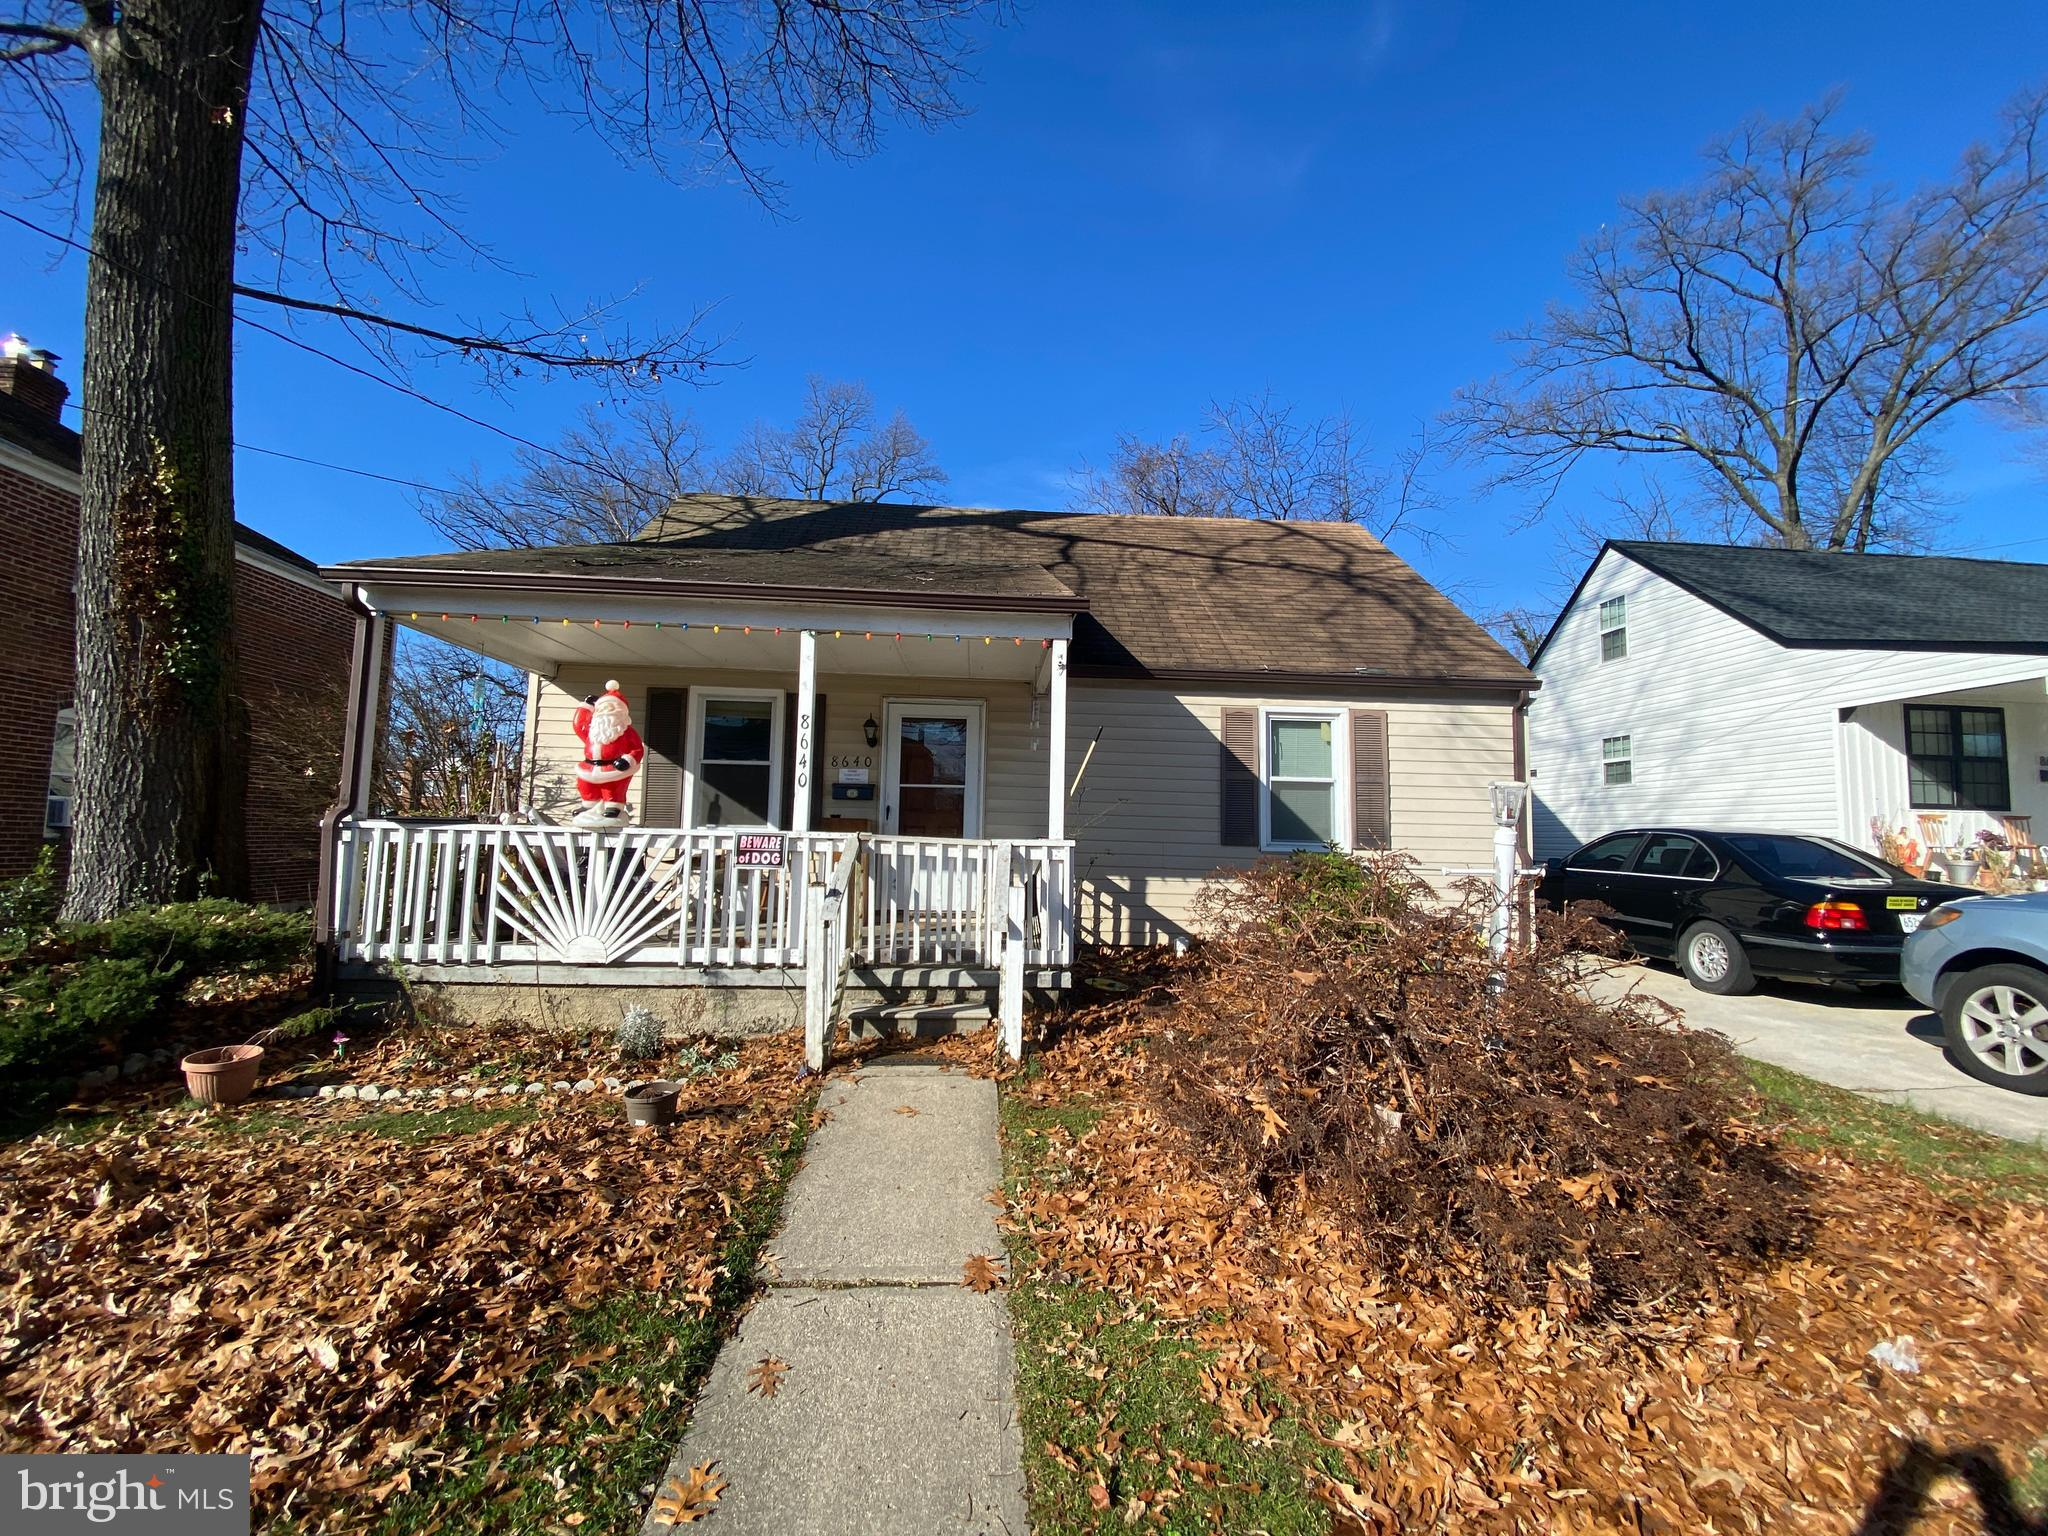 8640 OAKLEIGH ROAD, BALTIMORE, Maryland 21234, 3 Bedrooms Bedrooms, ,1 BathroomBathrooms,Single Family,For Sale,8640 OAKLEIGH ROAD,MDBC515928